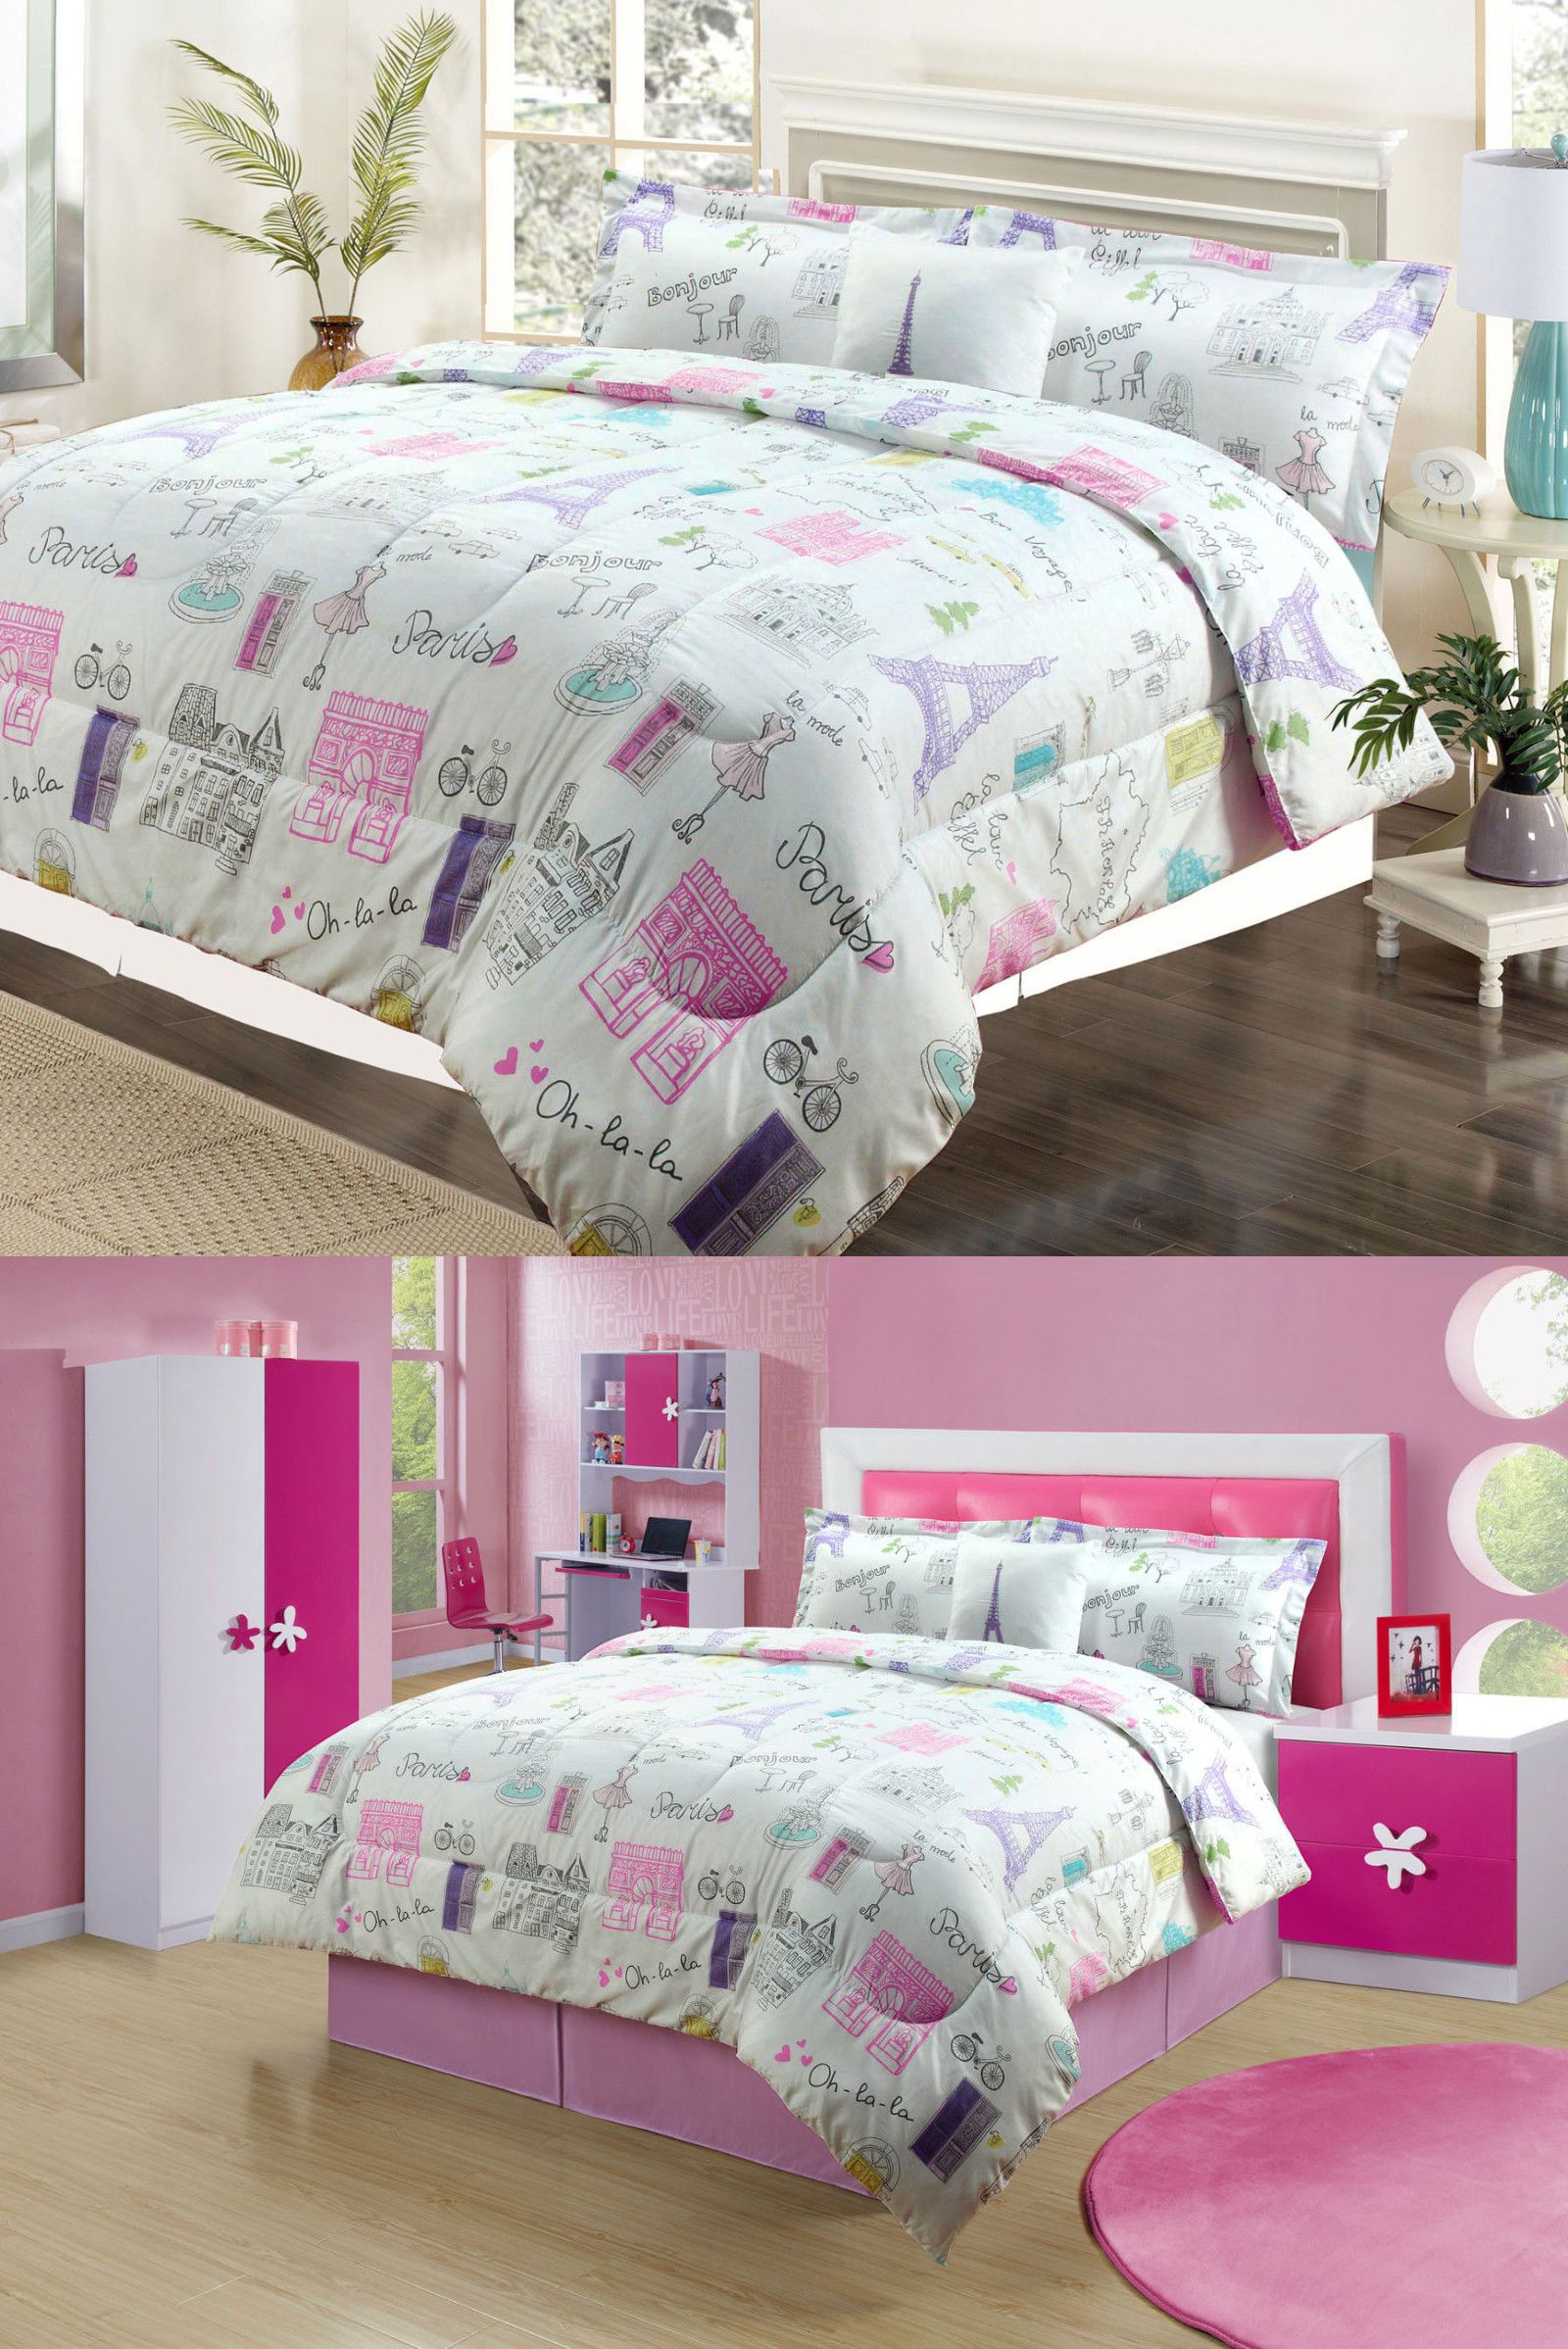 helena comforter sets full purple set summer girl sweet or p twin queen spring quilt pink pa floral green bedding